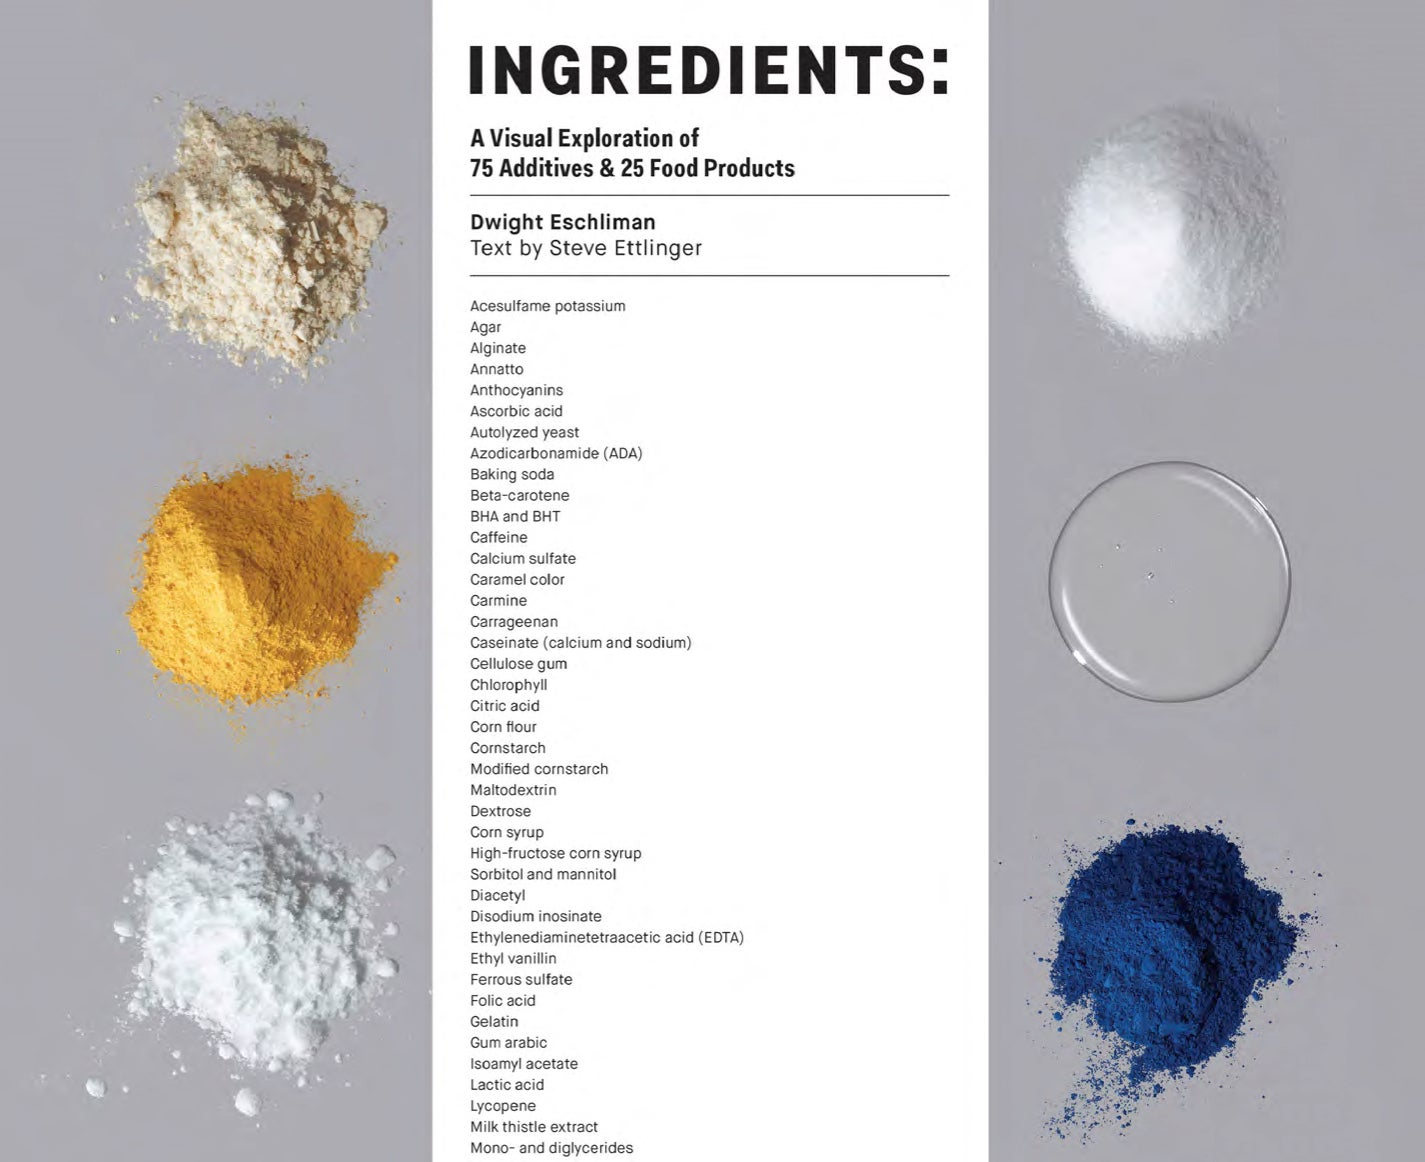 These are the ingredients and additives inside your favourite foods